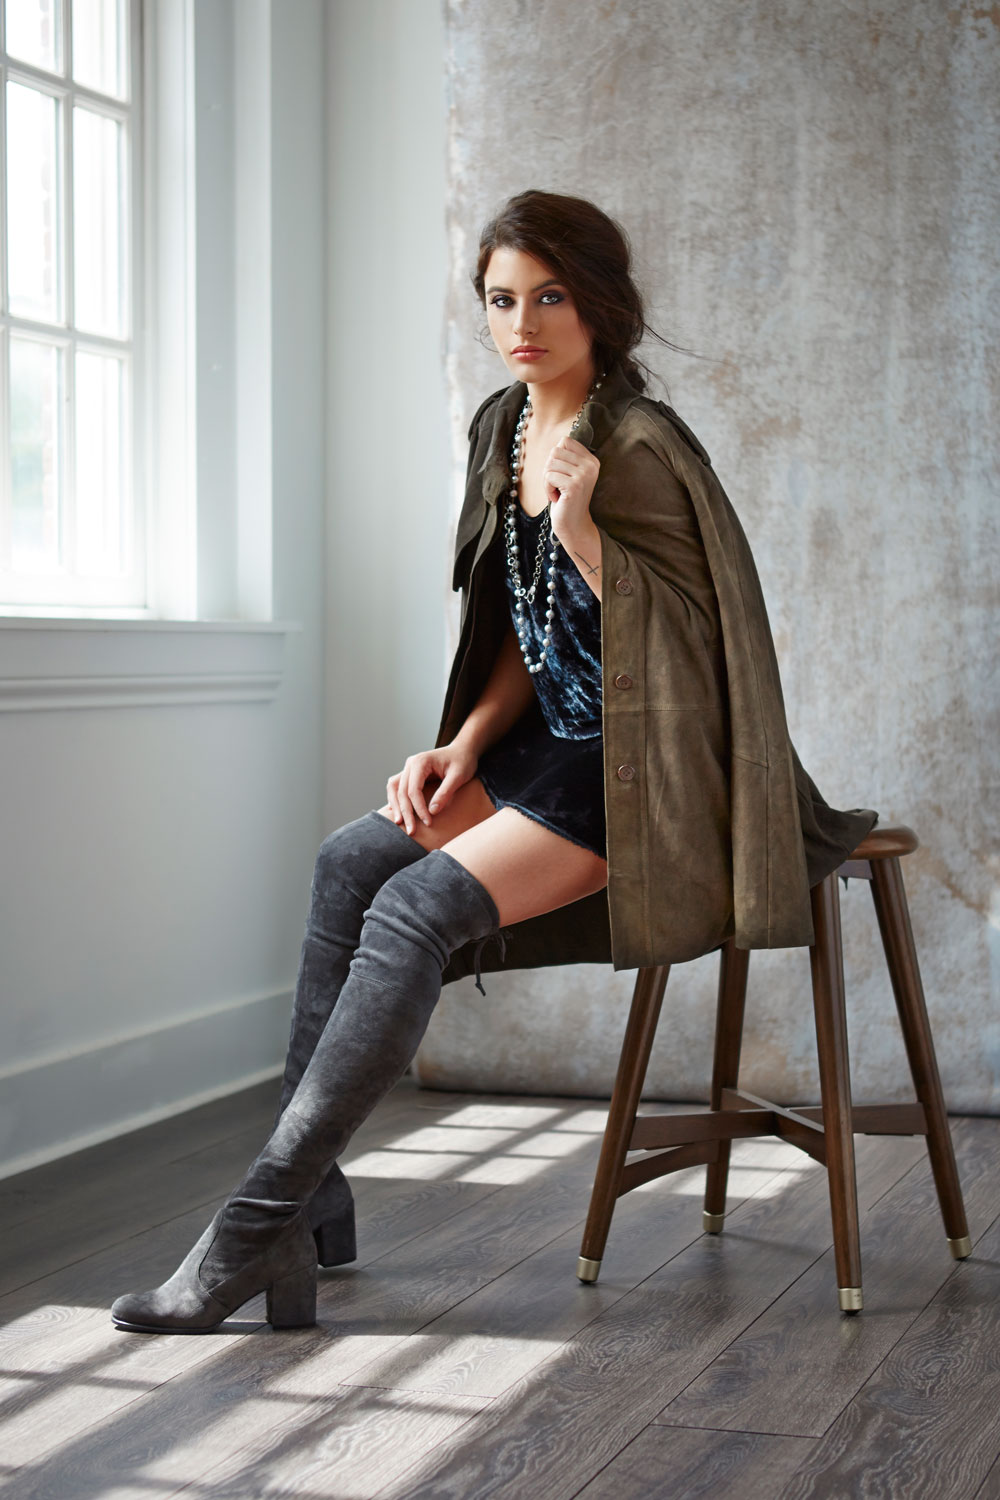 Jakett suede jacket, Raquel Allegra crushed velvet dress, The Woods necklace, Stuart Weitzman over-the-knee boot